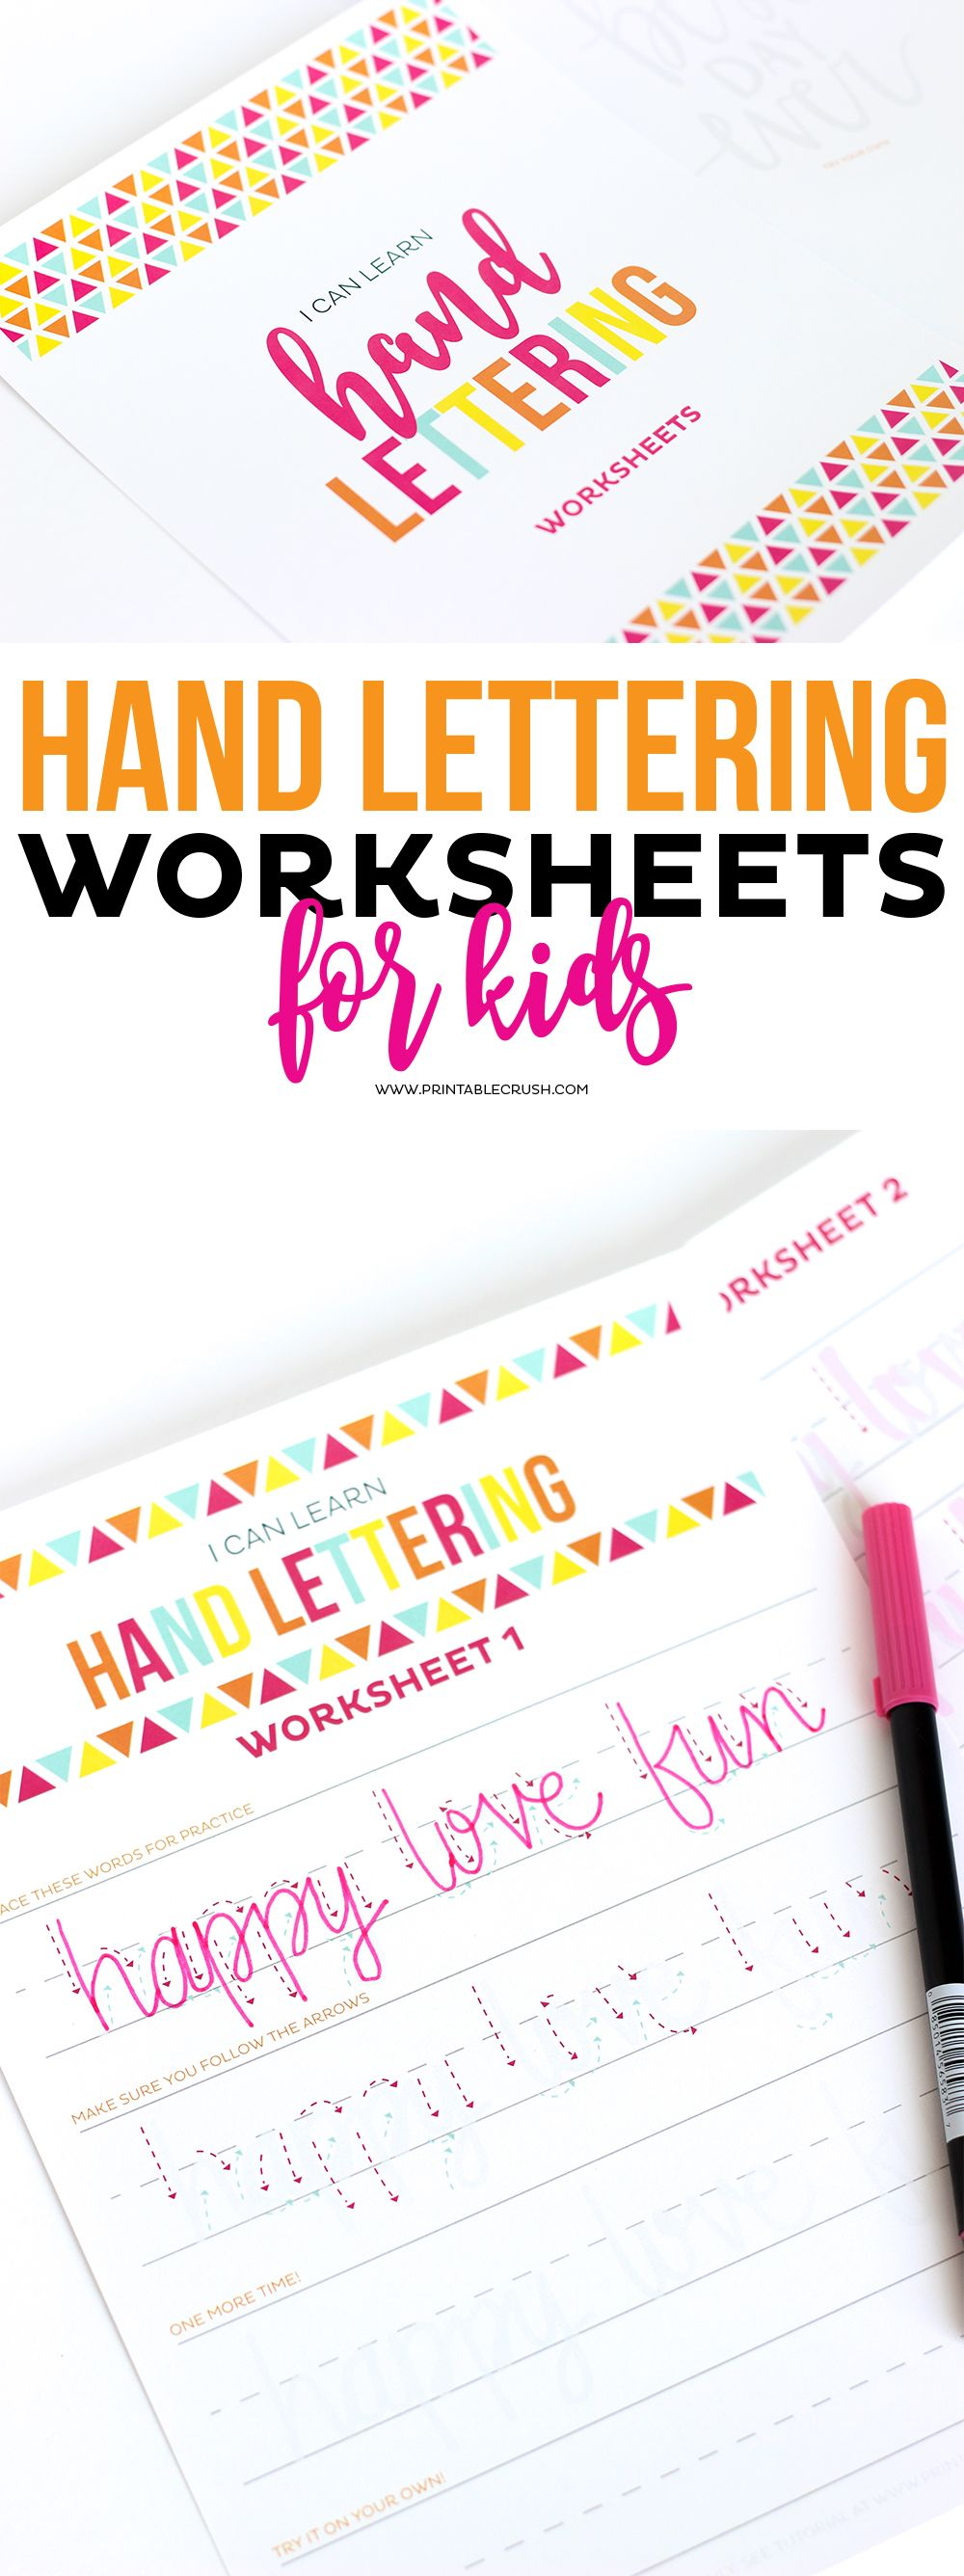 Free Brush Lettering Practice Sheets Uppercase Alphabet Amy Latta Creations Hand Lettering Worksheet Brush Lettering Practice Hand Lettering Practice Sheets [ 2048 x 1535 Pixel ]